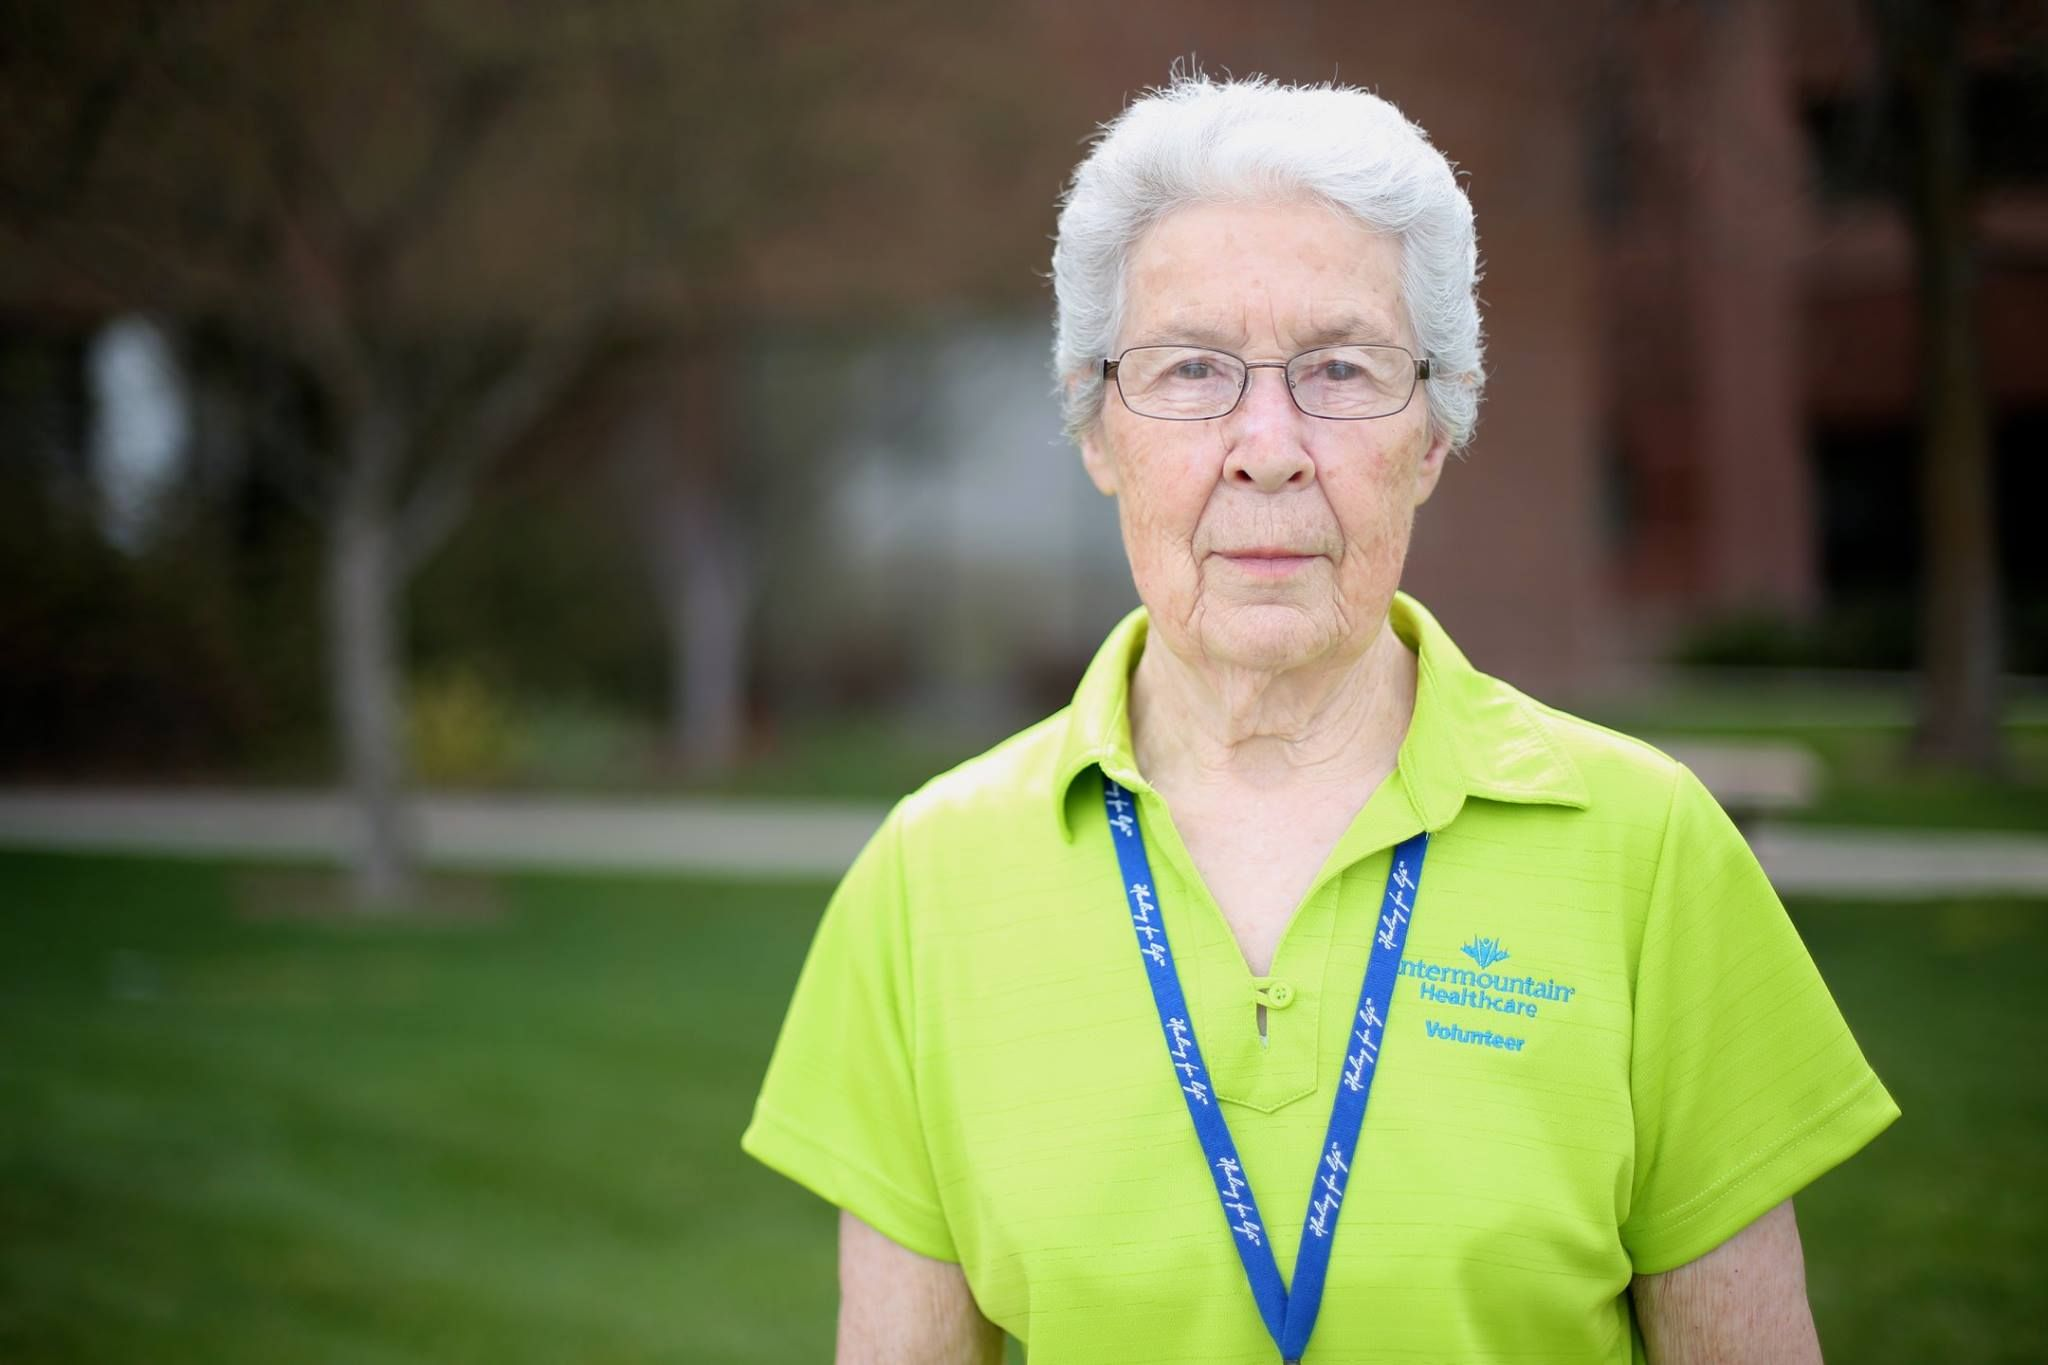 Diane colston has volunteered 10974 hours with us at here